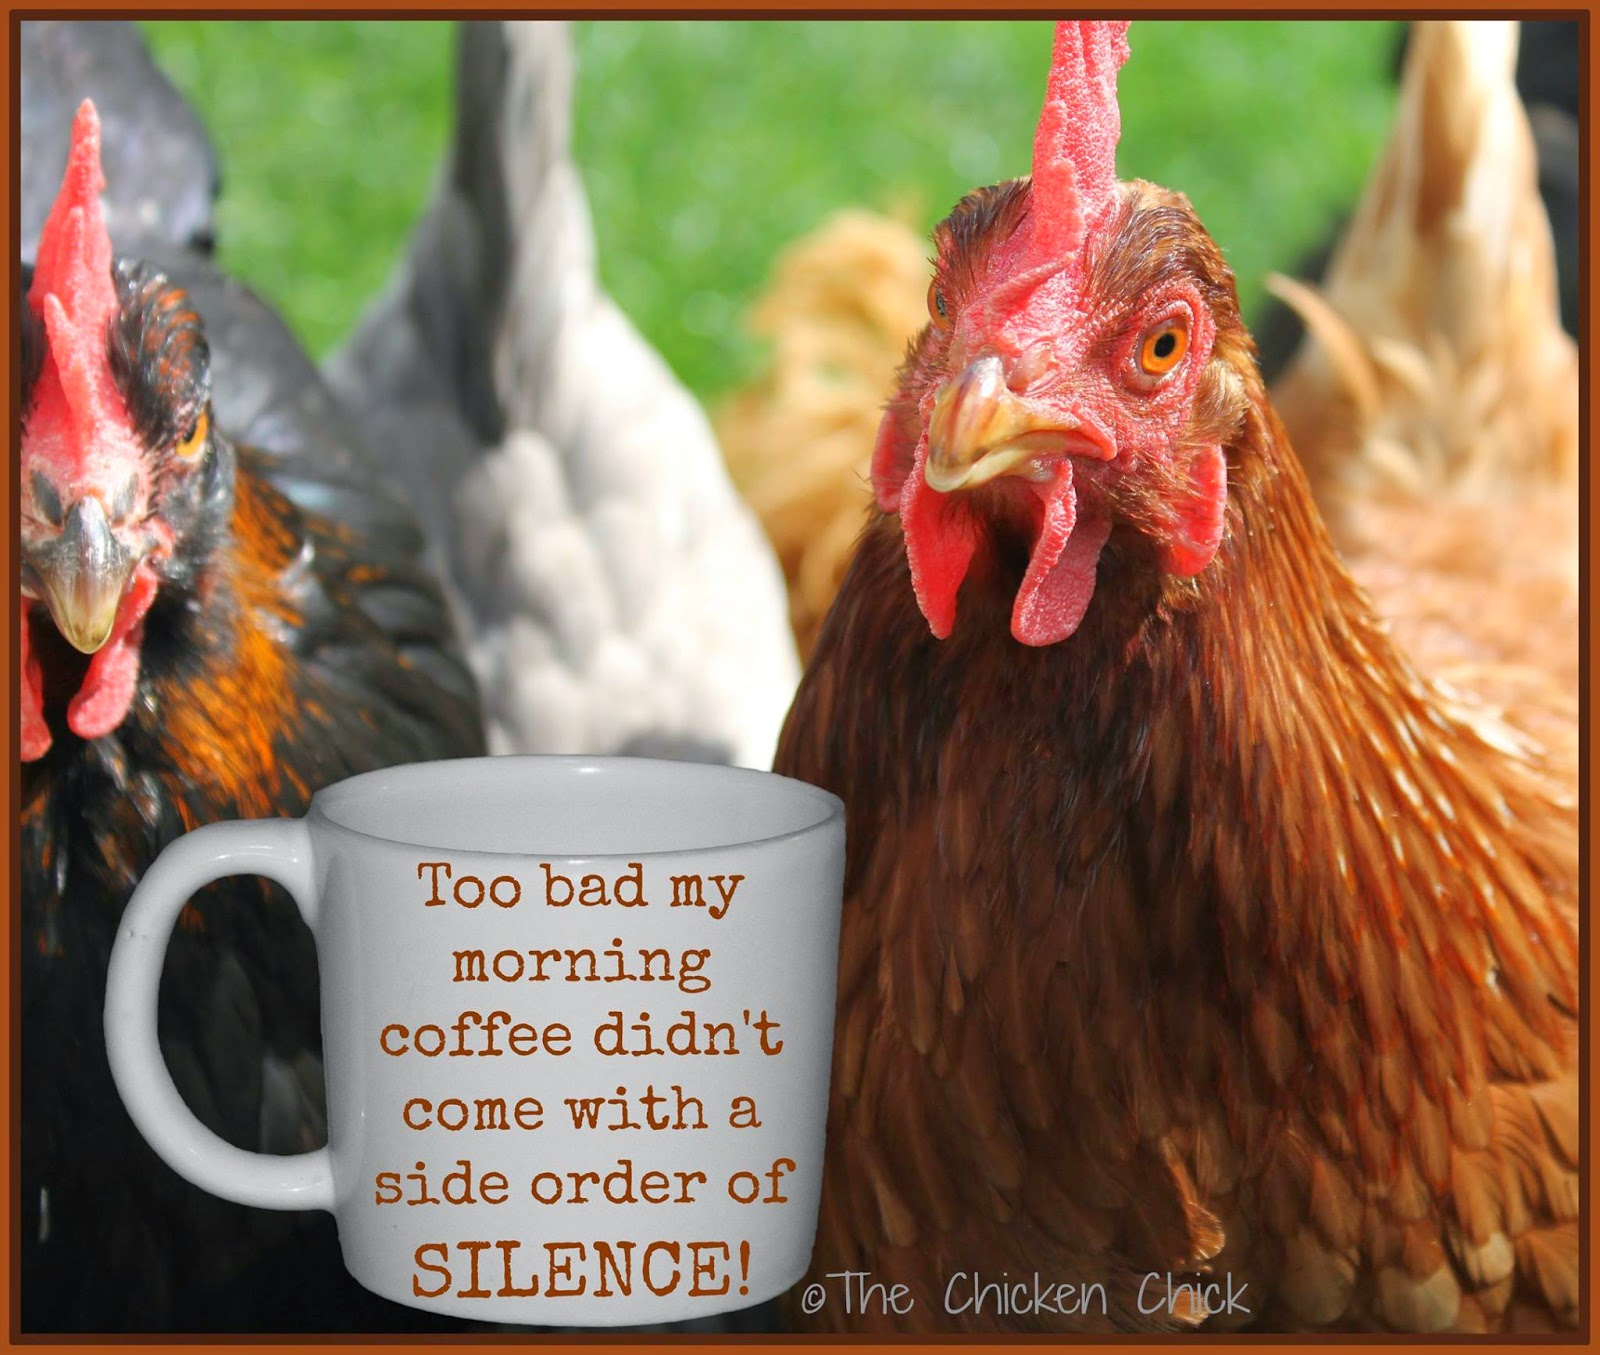 Too bad my morning coffee ddn't come with a side order of SILENCE!